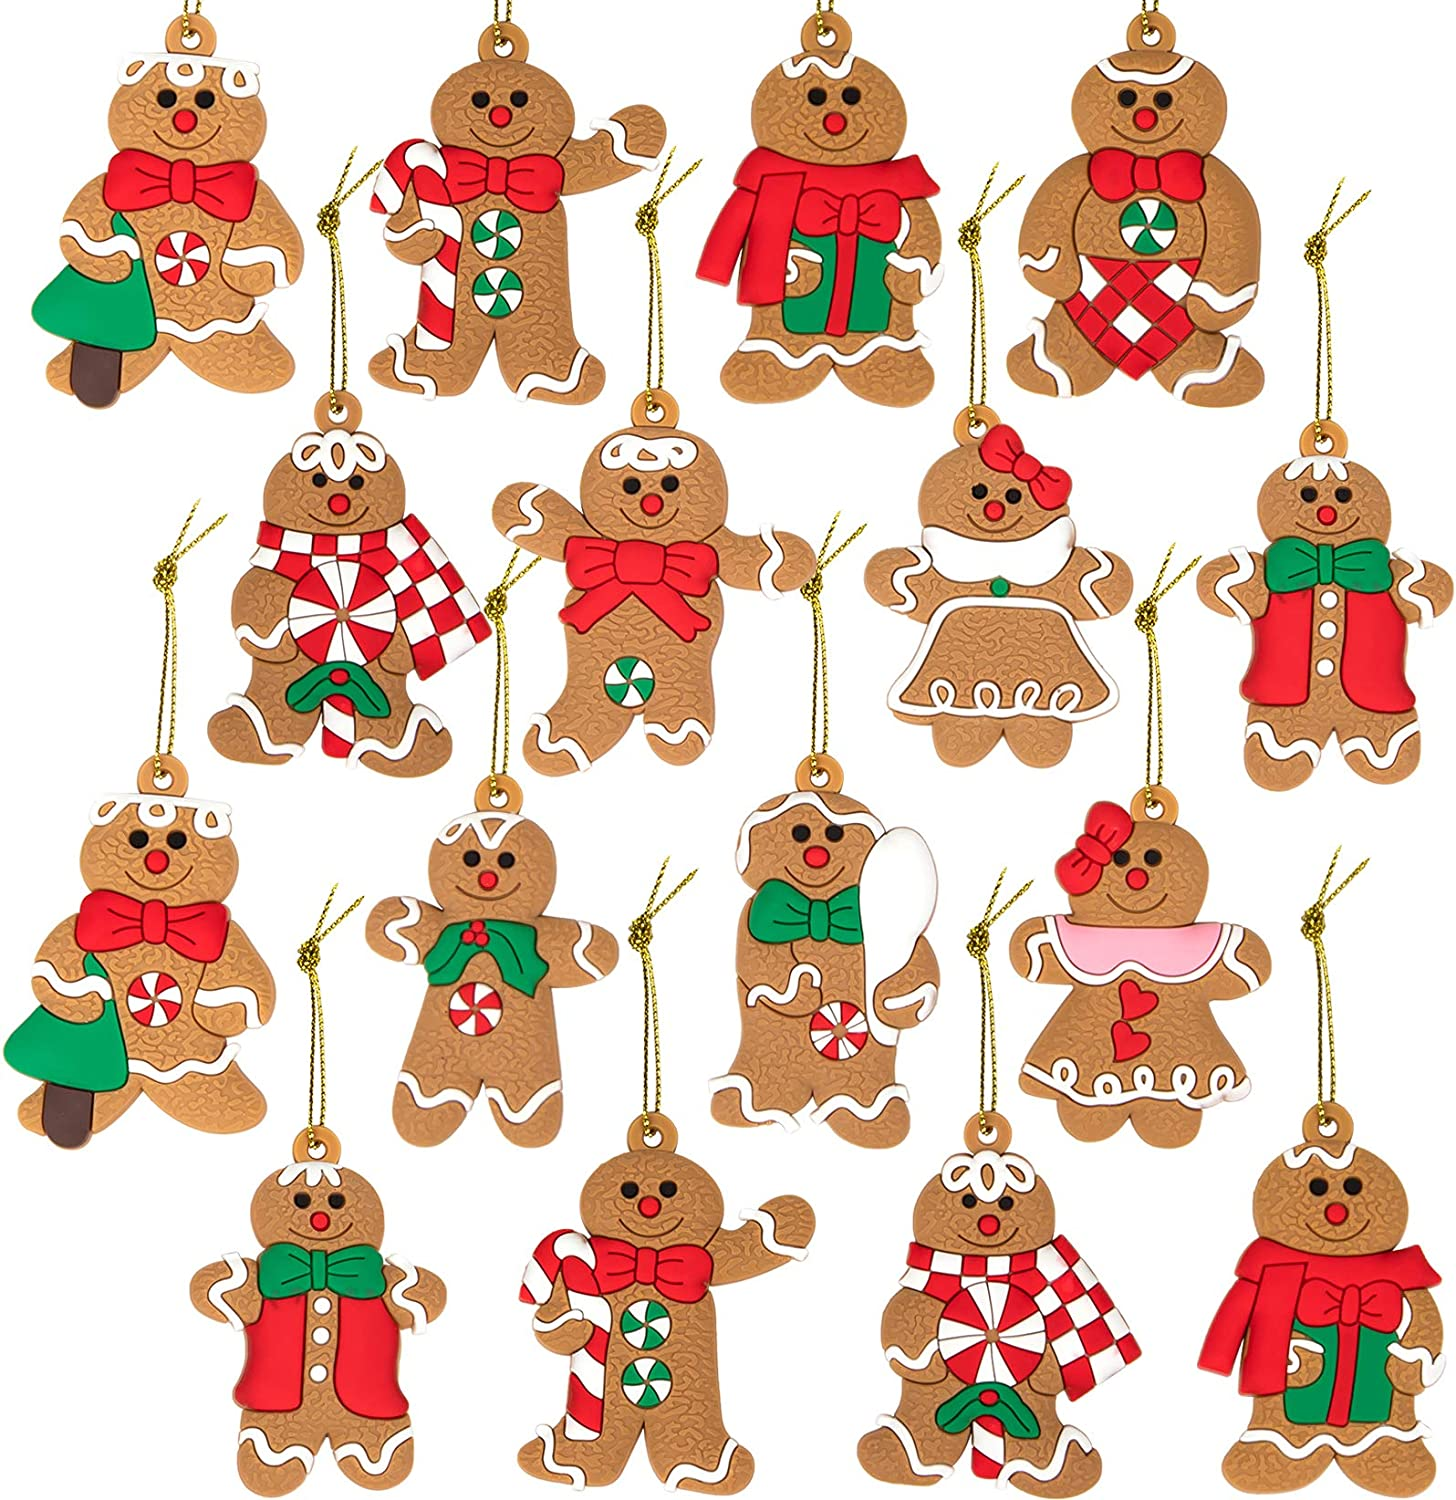 WUWEOT 16 Pack Gingerbread Man Figurine Ornaments, Doll Gingerman Hanging Charms Christmas Tree Decoration for Party, Home, Kitchen and Holiday, PVC Soft Rubber, 2.1 x 1.5 inches